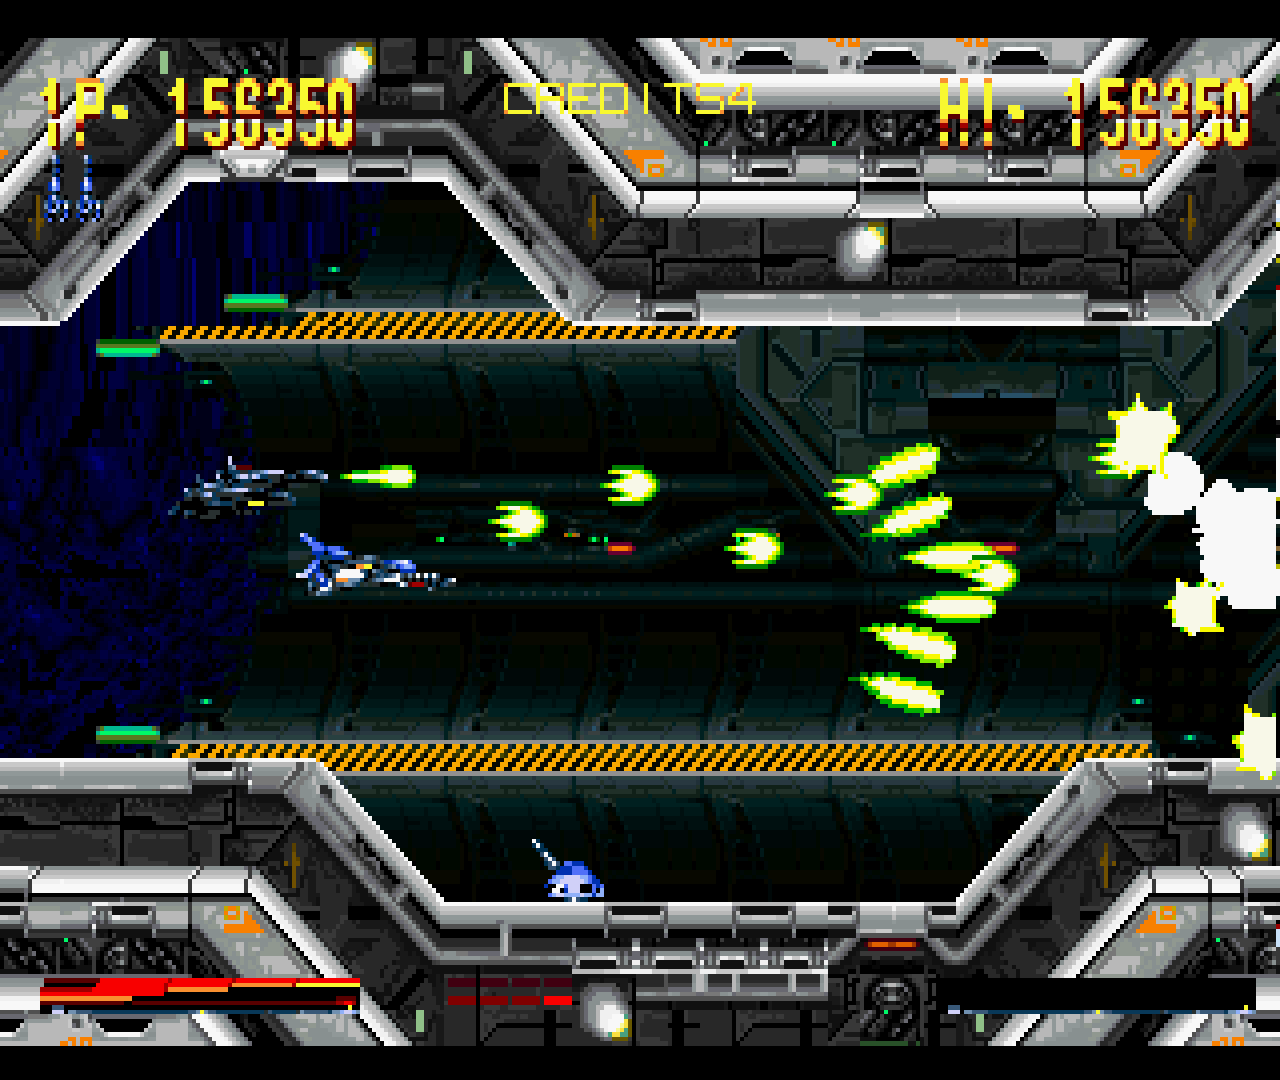 Figure 11 - In this game, it's not just the enemies who can shoot hundreds of bullets